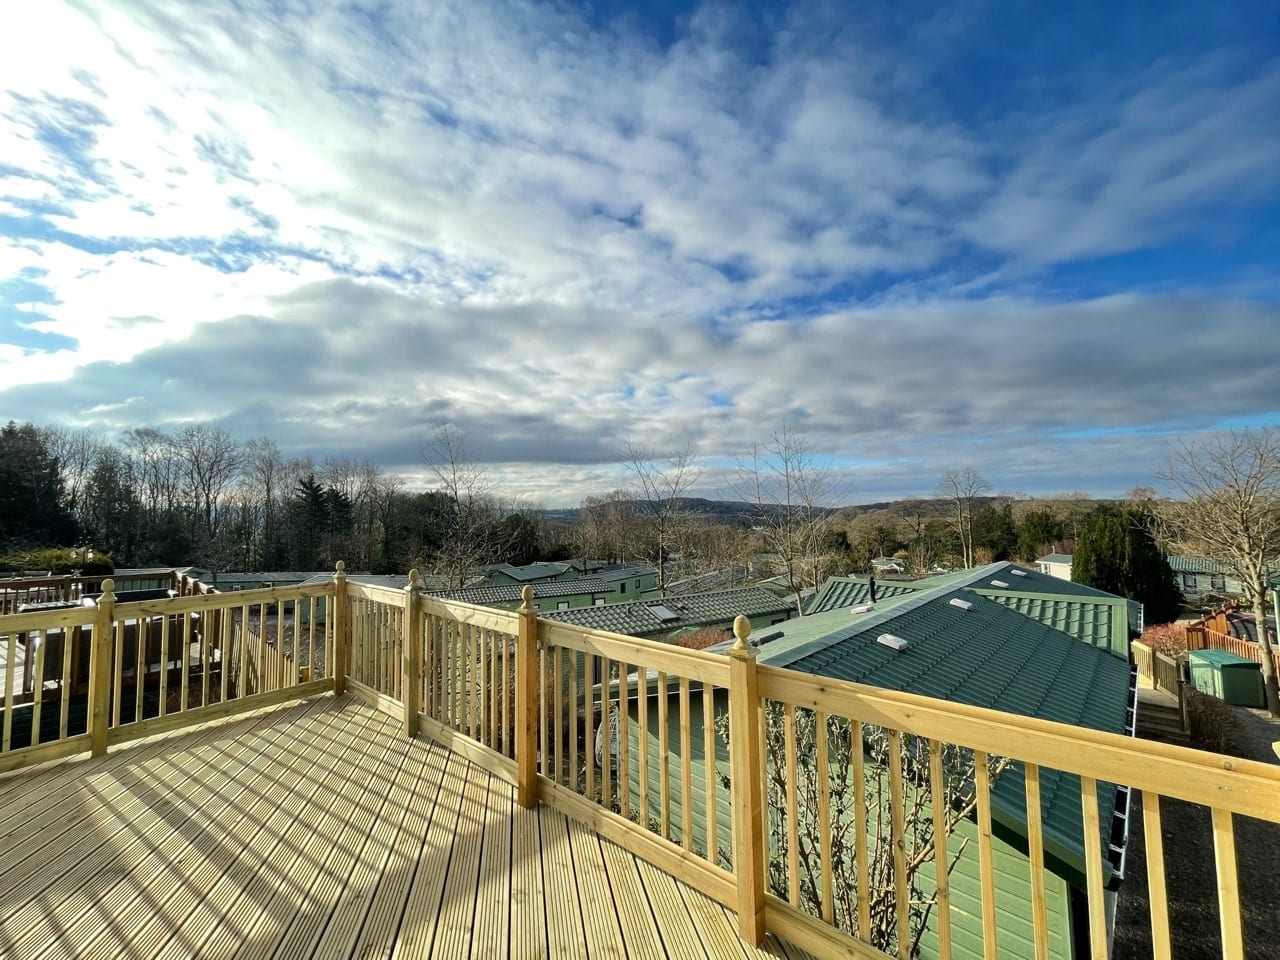 2021 Swift Bordeaux at Silver Ridge - Holgates holiday homes for sale (Deck view)